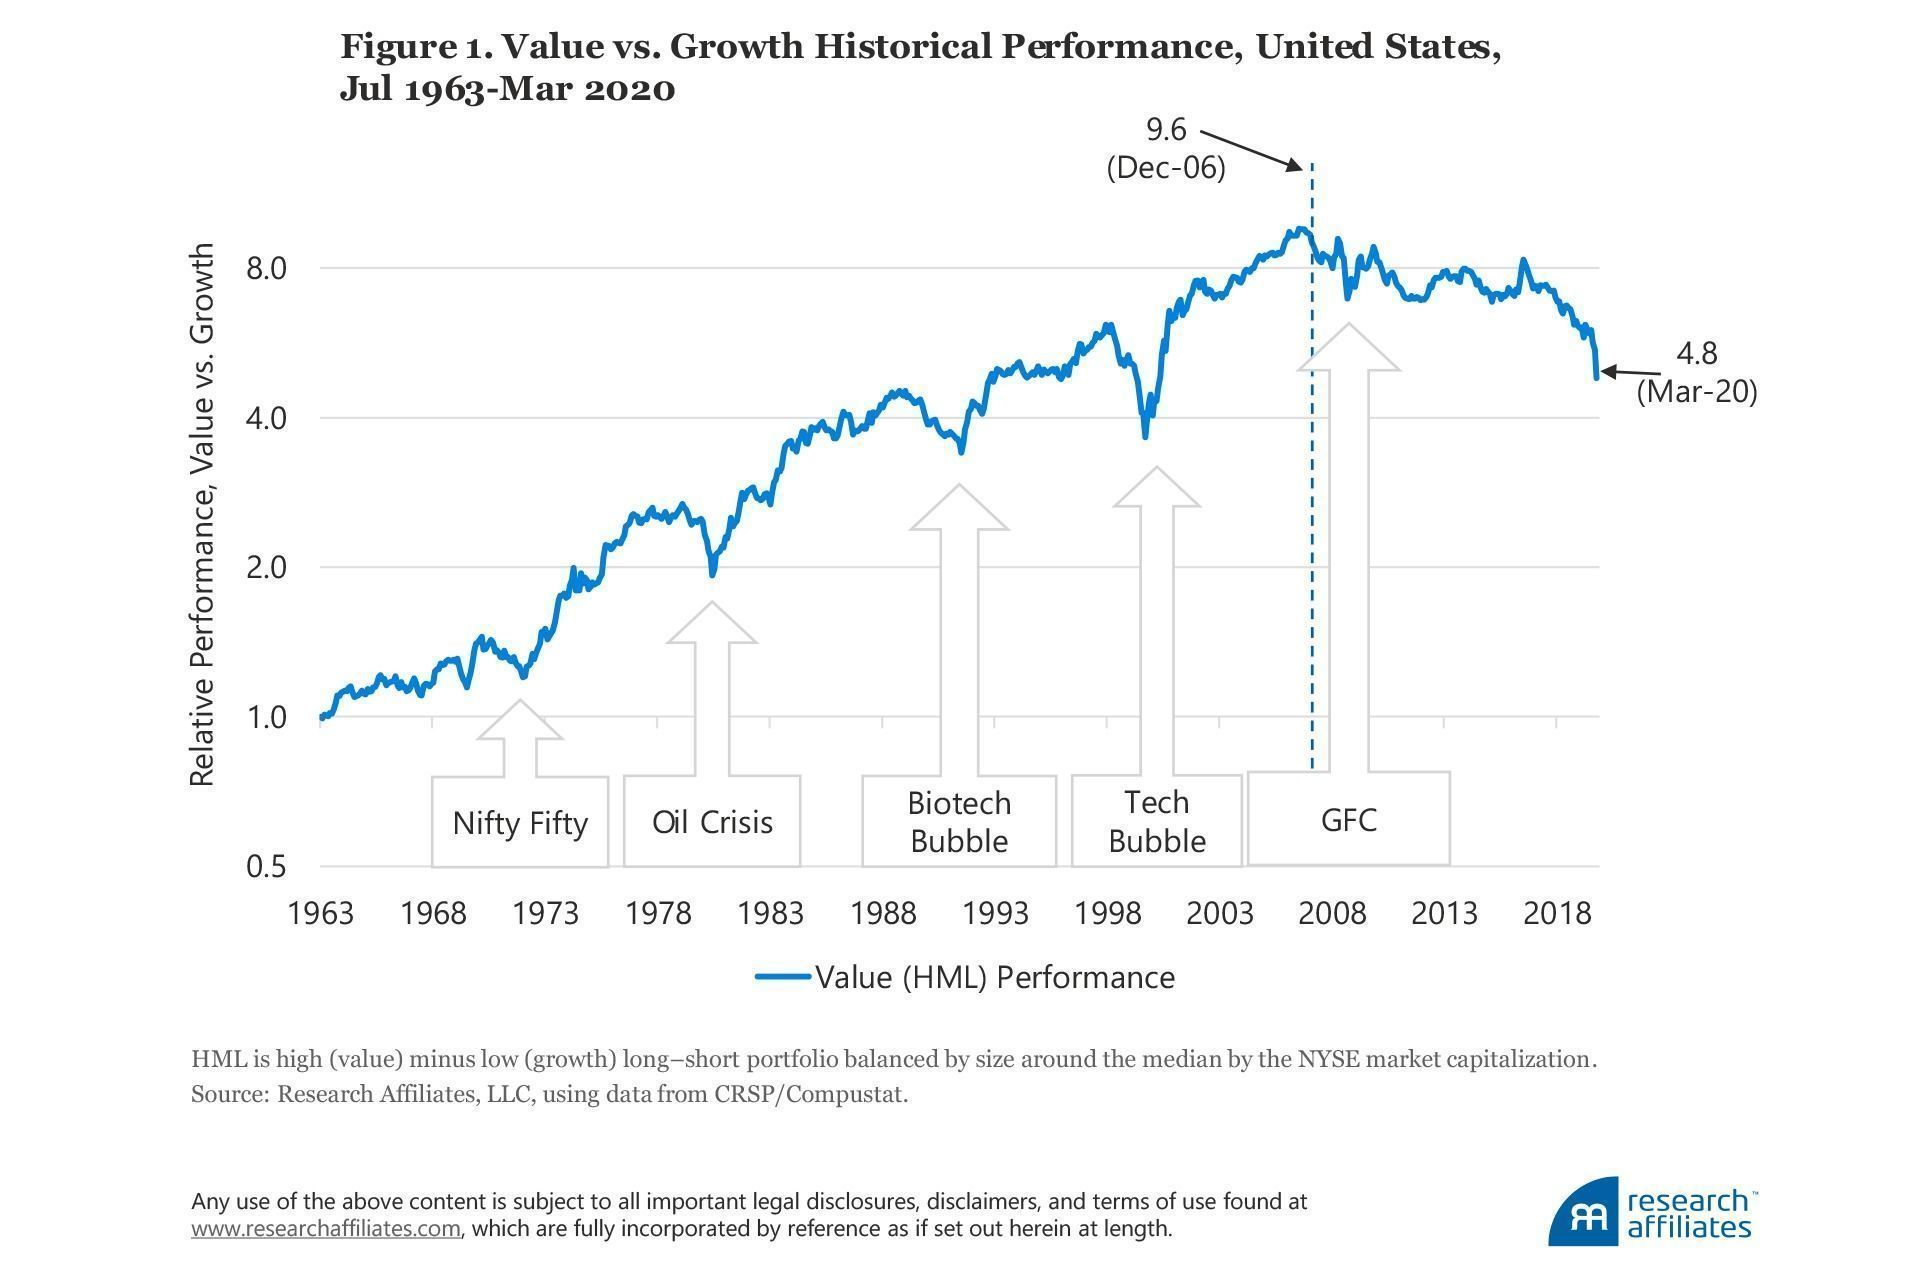 value_vs_growth_historical_performance